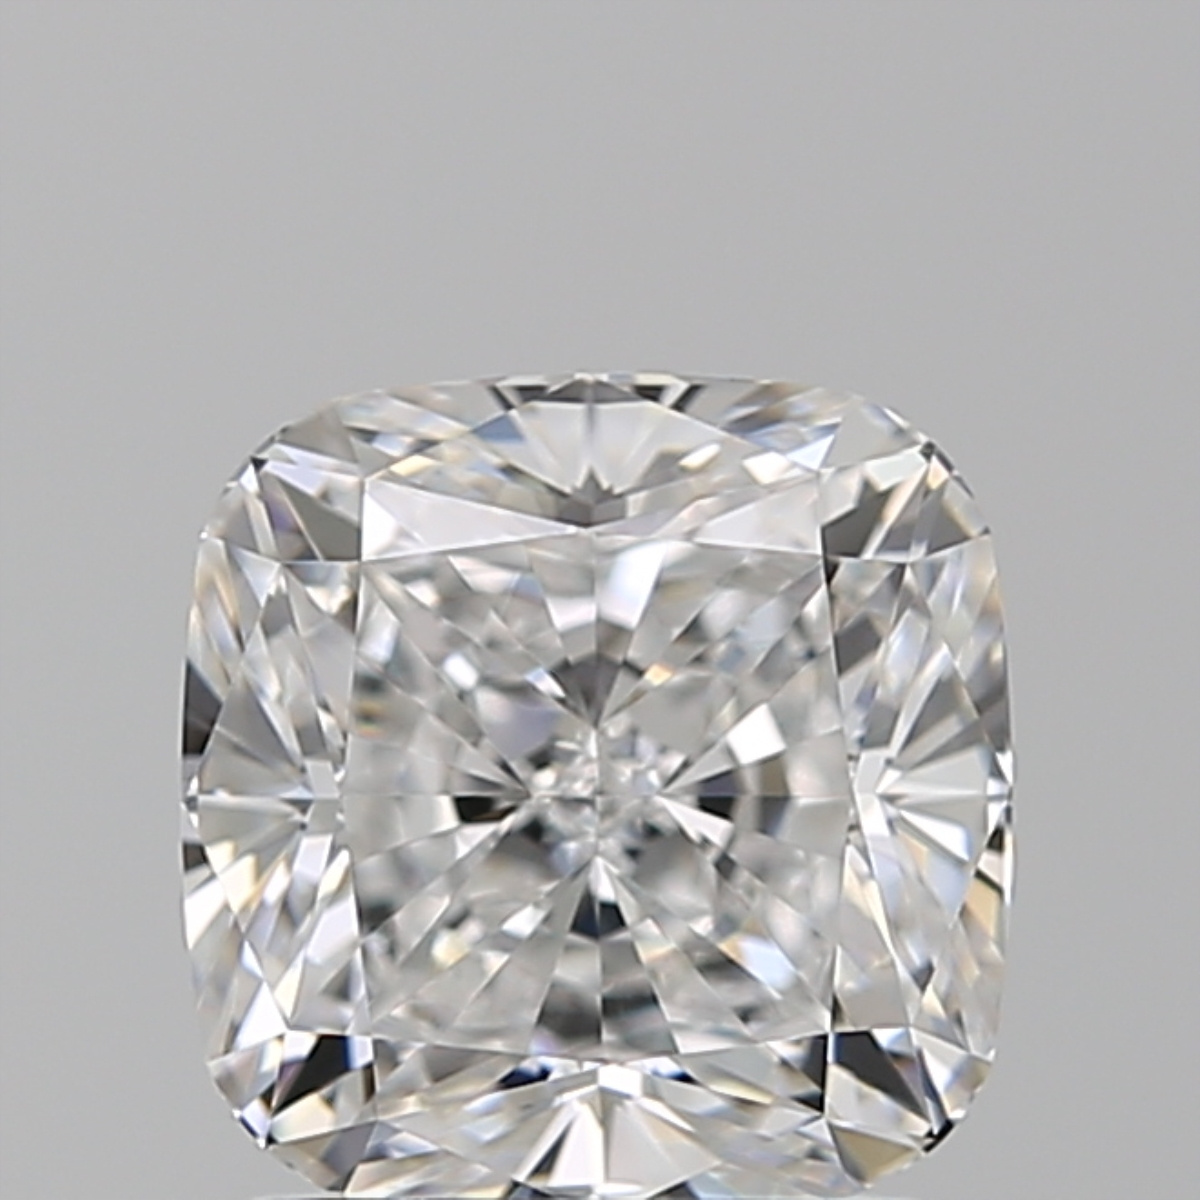 1.51 ct Cushion Cut Diamond : D / VS1